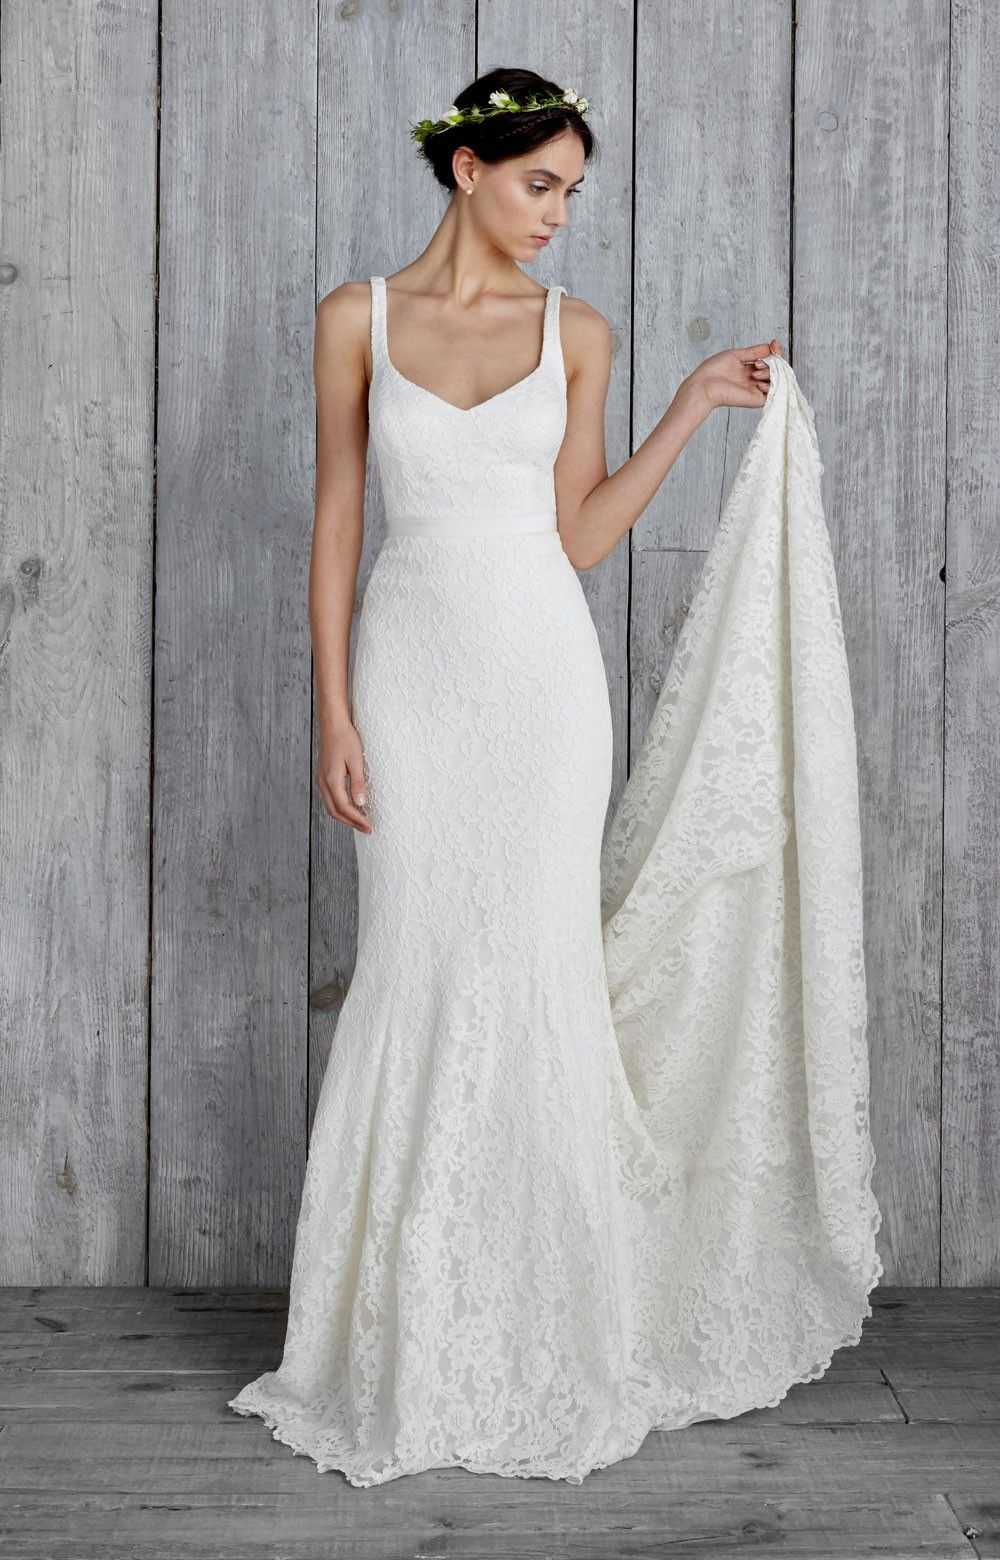 Nicole miller janey bridal gown vestidos de noiva e vestido creamy floral lace covers this figure hugging bridal gown a tonal waistband defines the junglespirit Choice Image